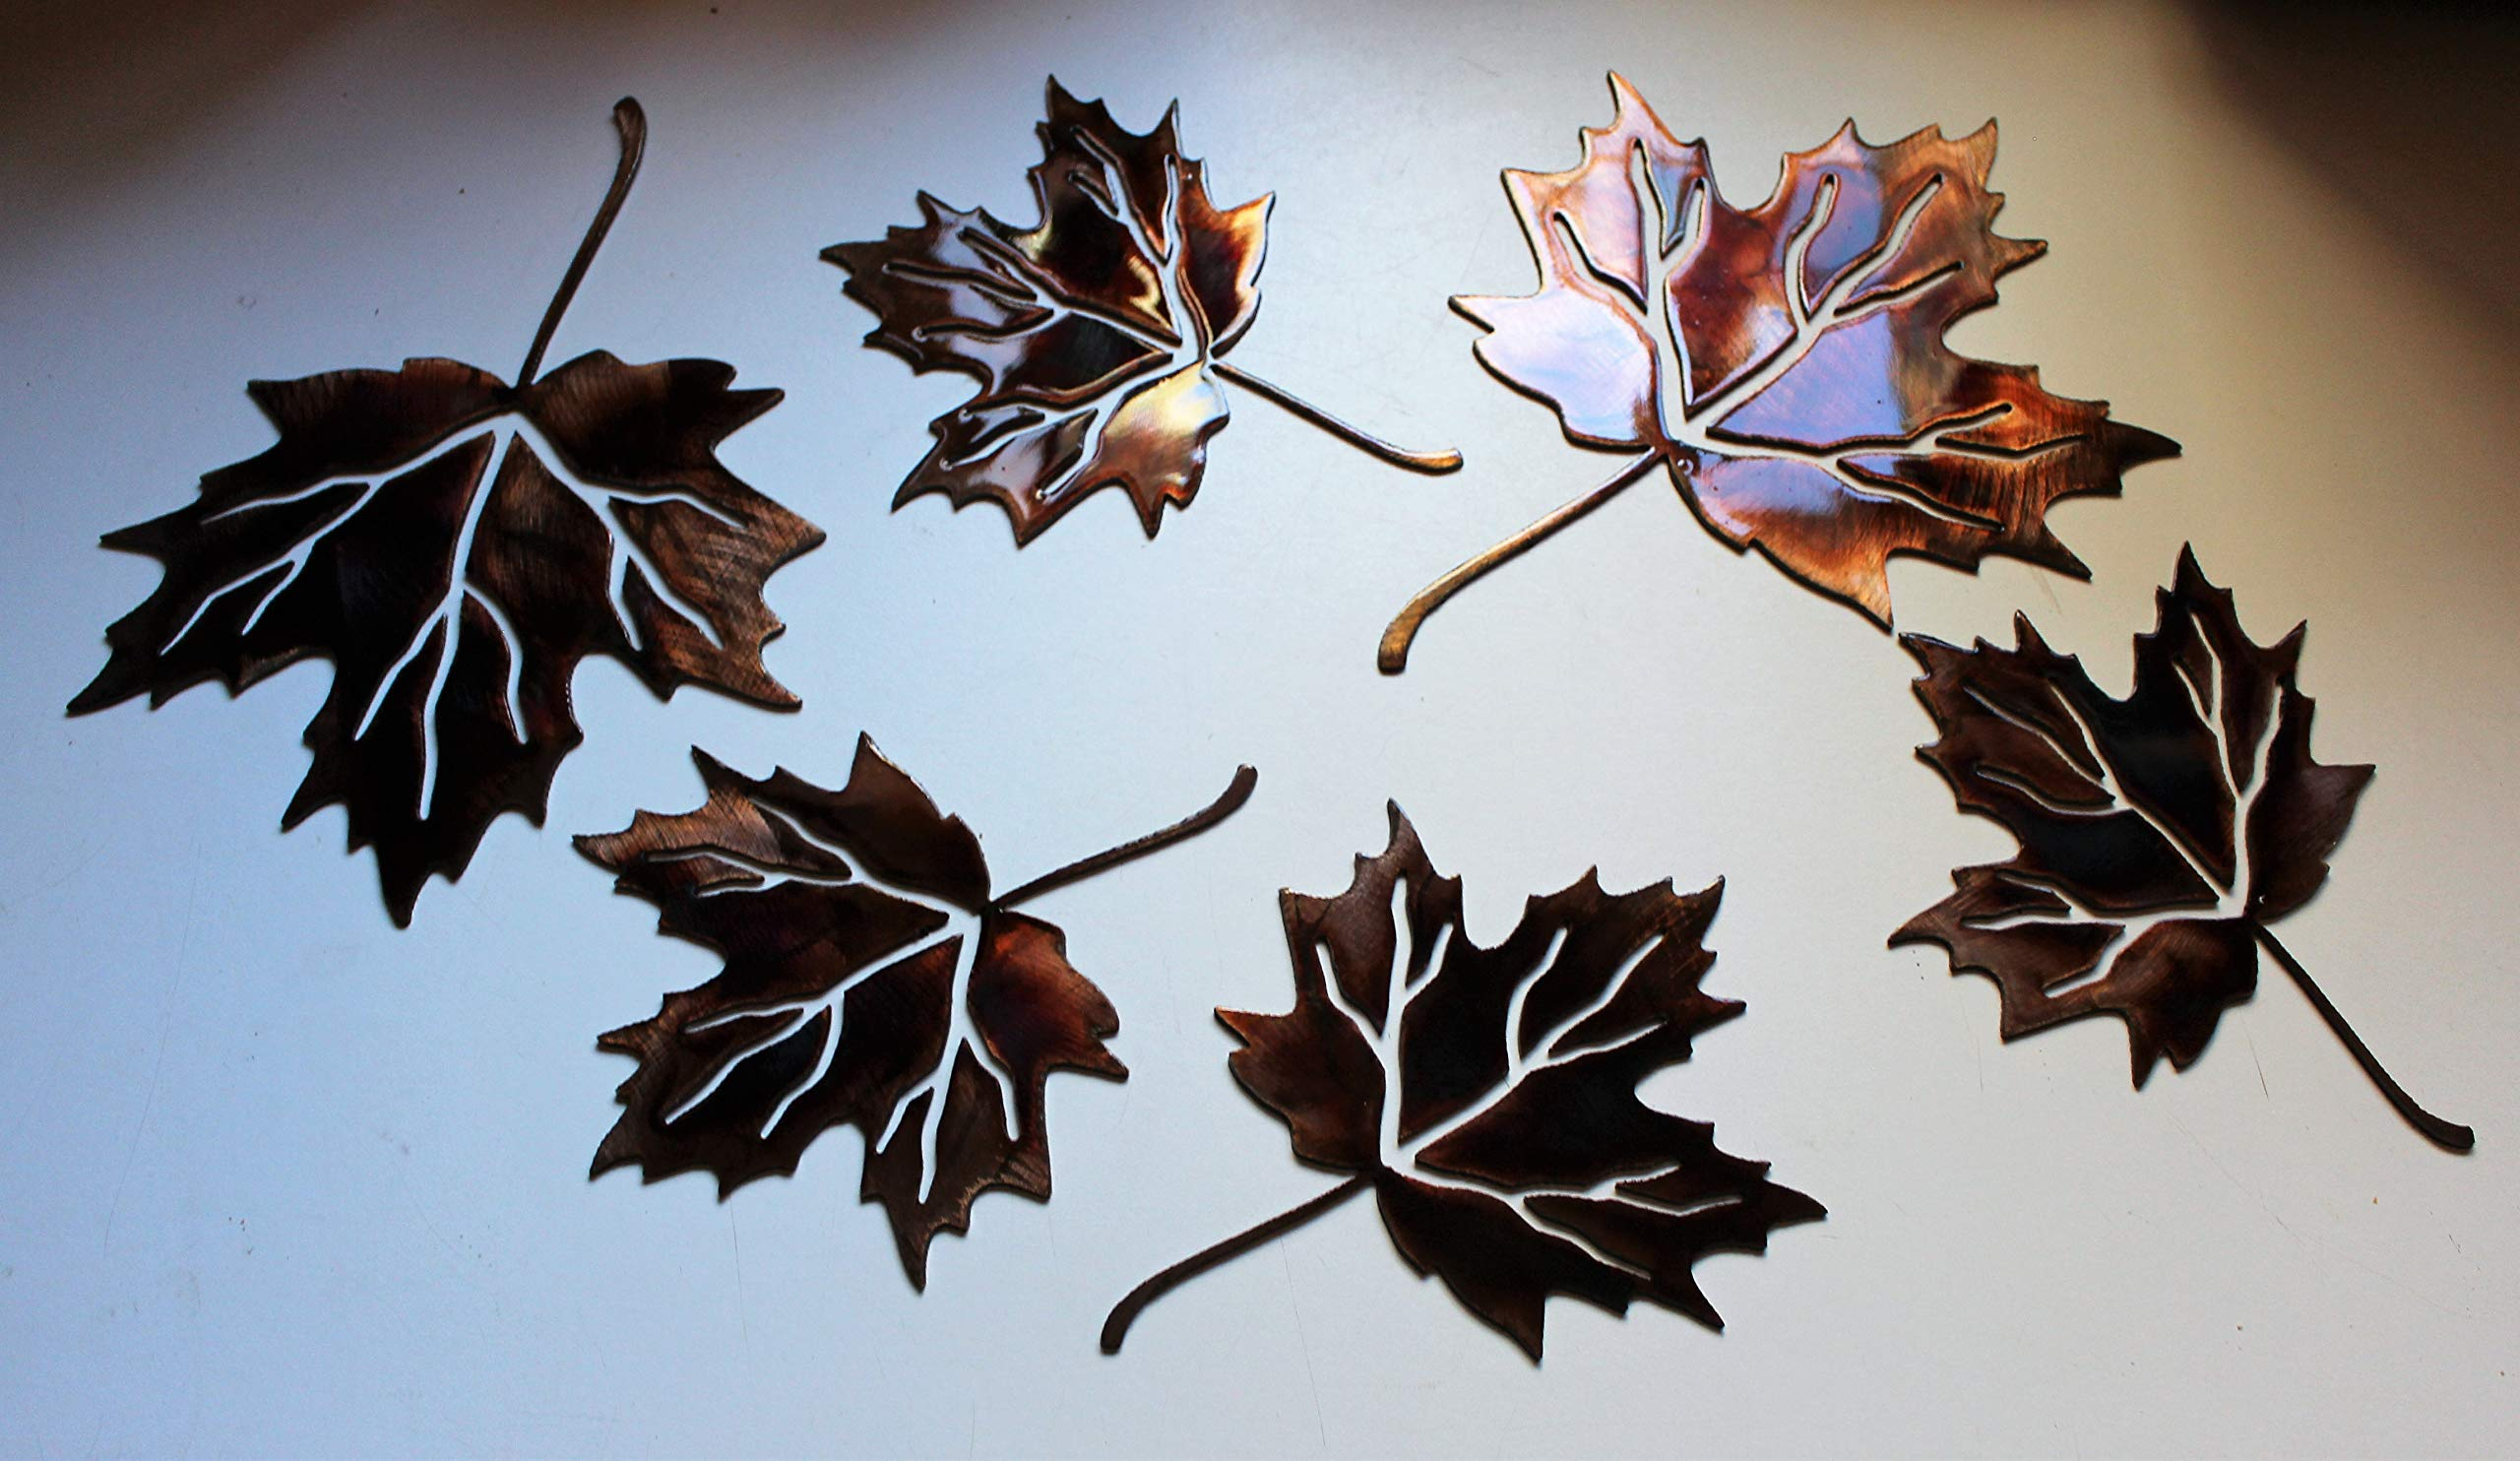 Metal Wall Art Maple Leaves Set of 6 by HG Artworks